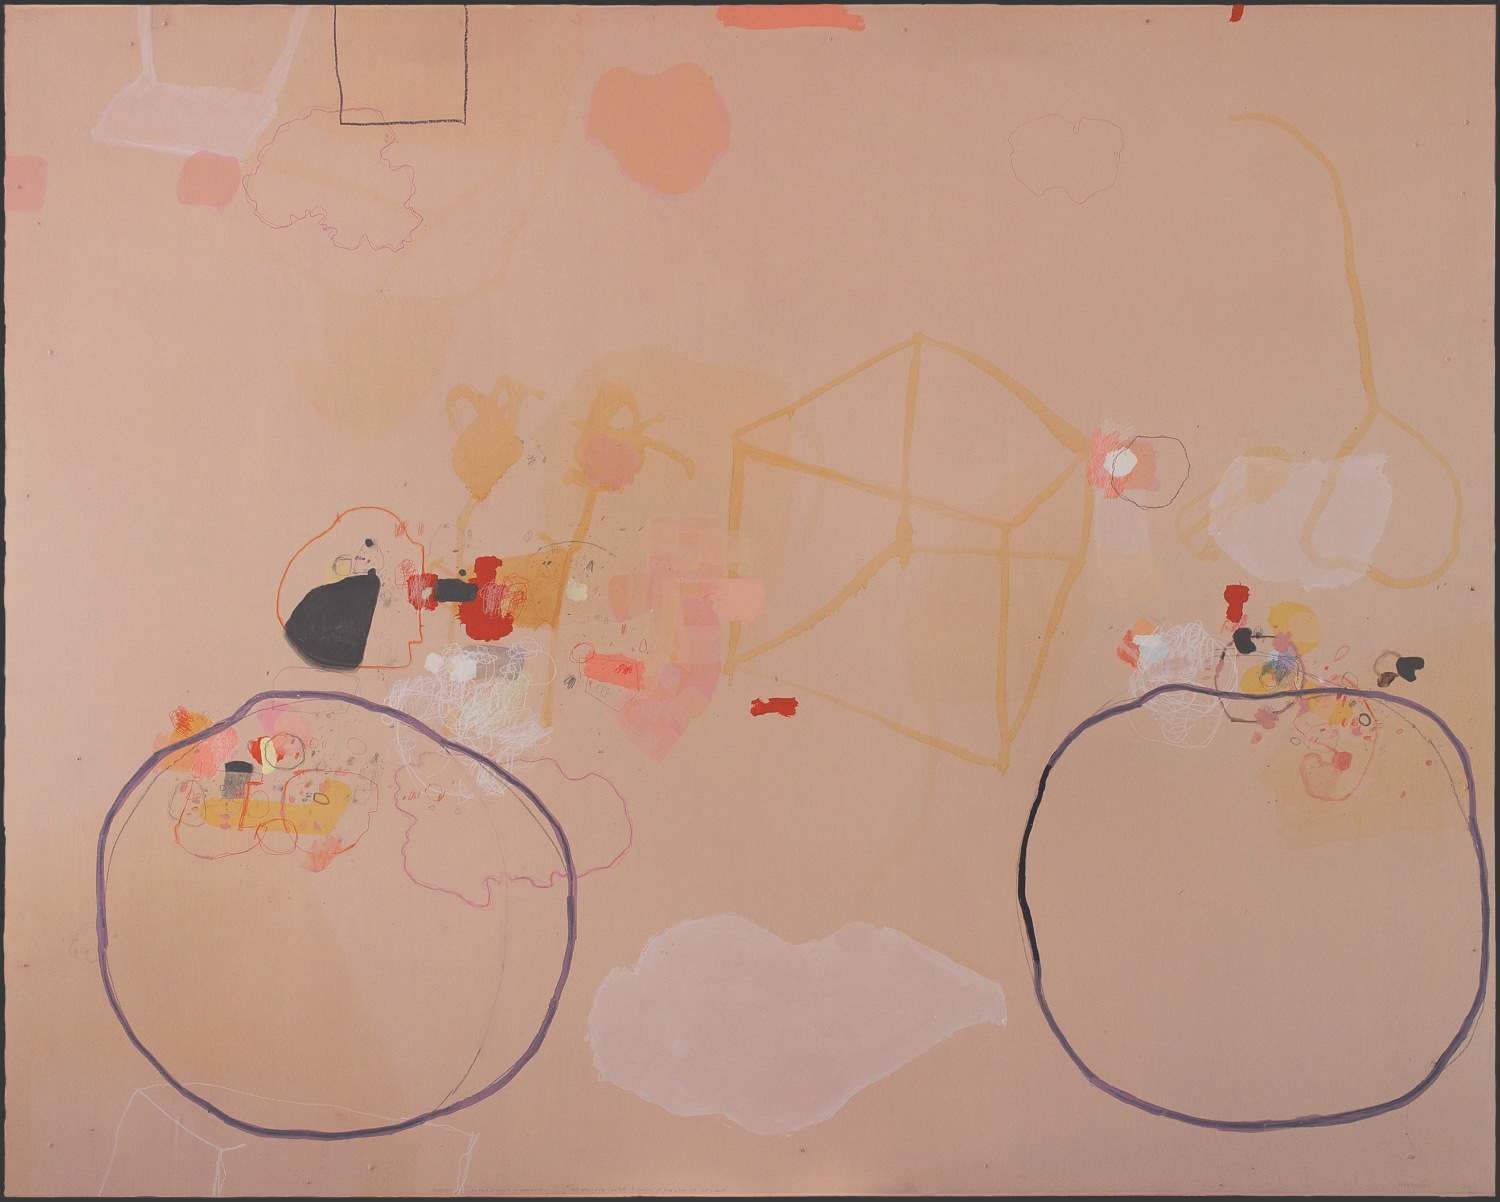 Kim Pieters:the painting 'In my room, the world is beyond my understanding, But when I walk I see that it consists of three or four hills and a cloud'